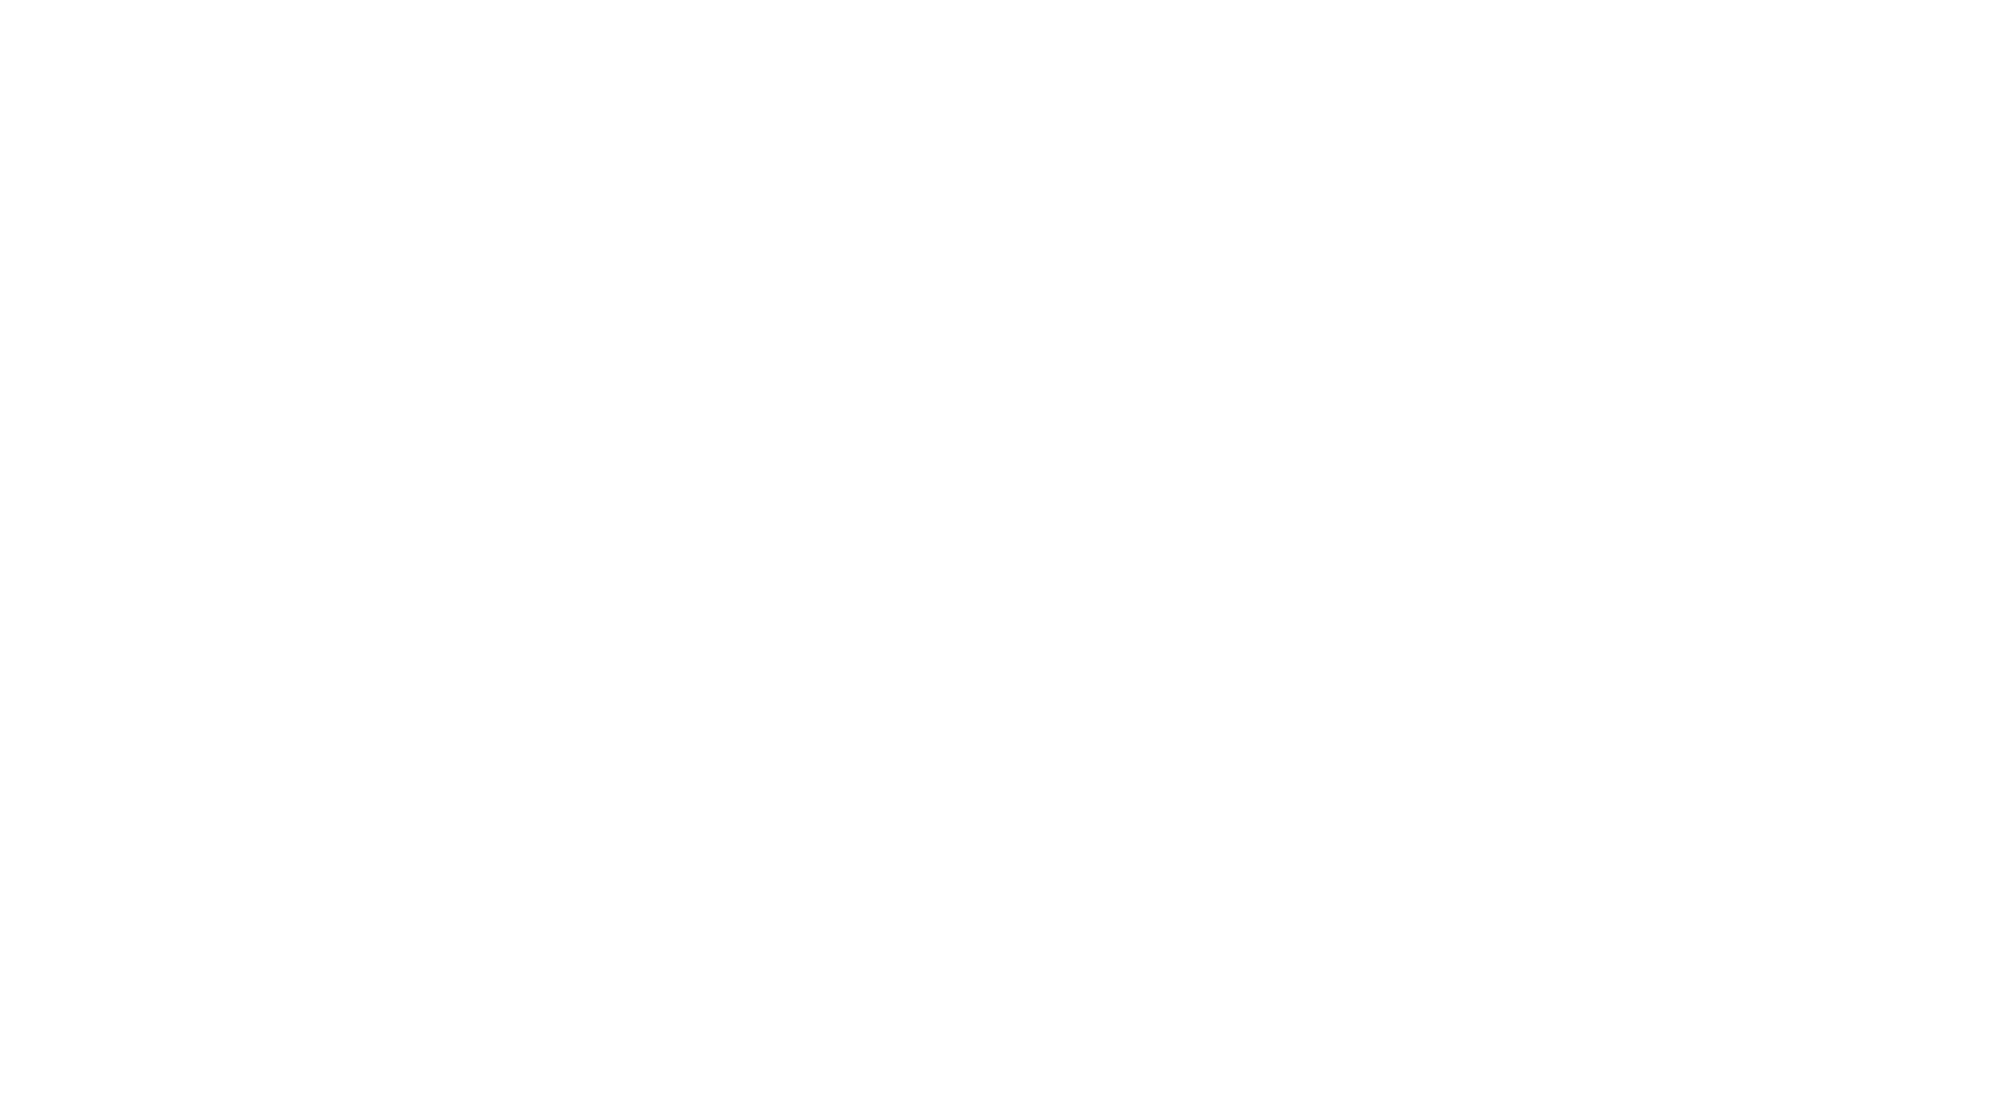 J.Striebel Design & Art Direction